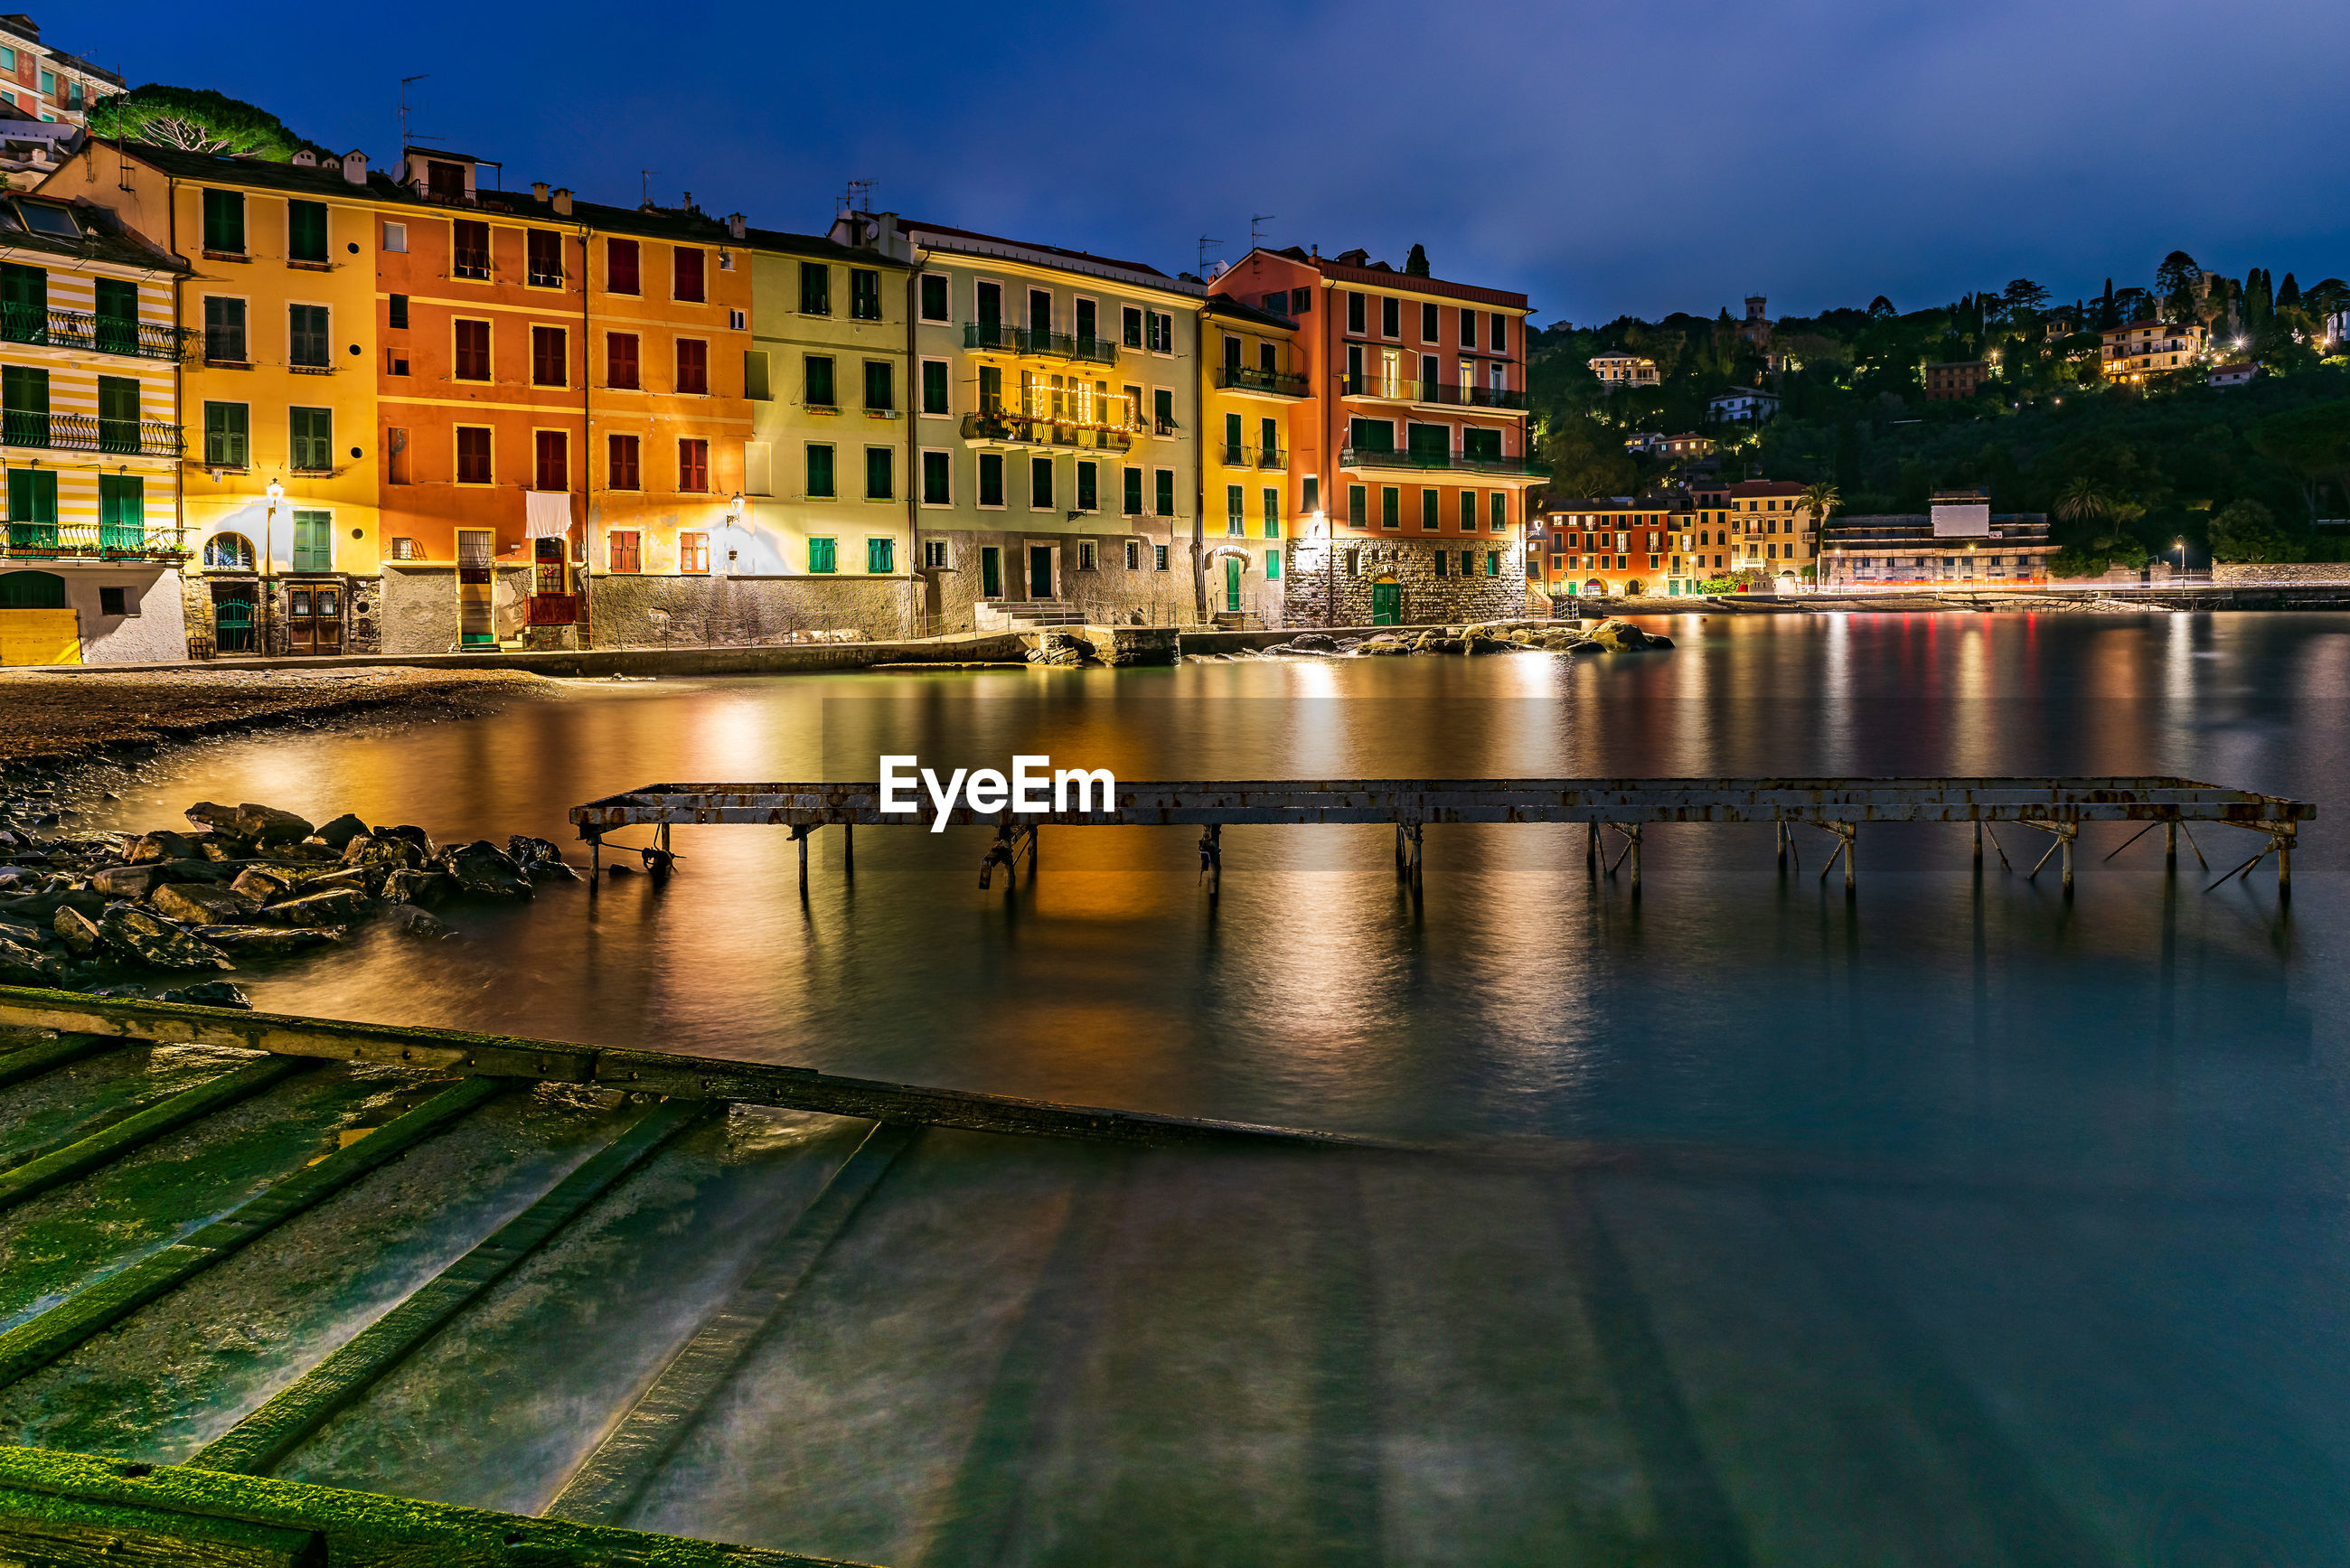 Rusty pier on lake against buildings in illuminated city at night